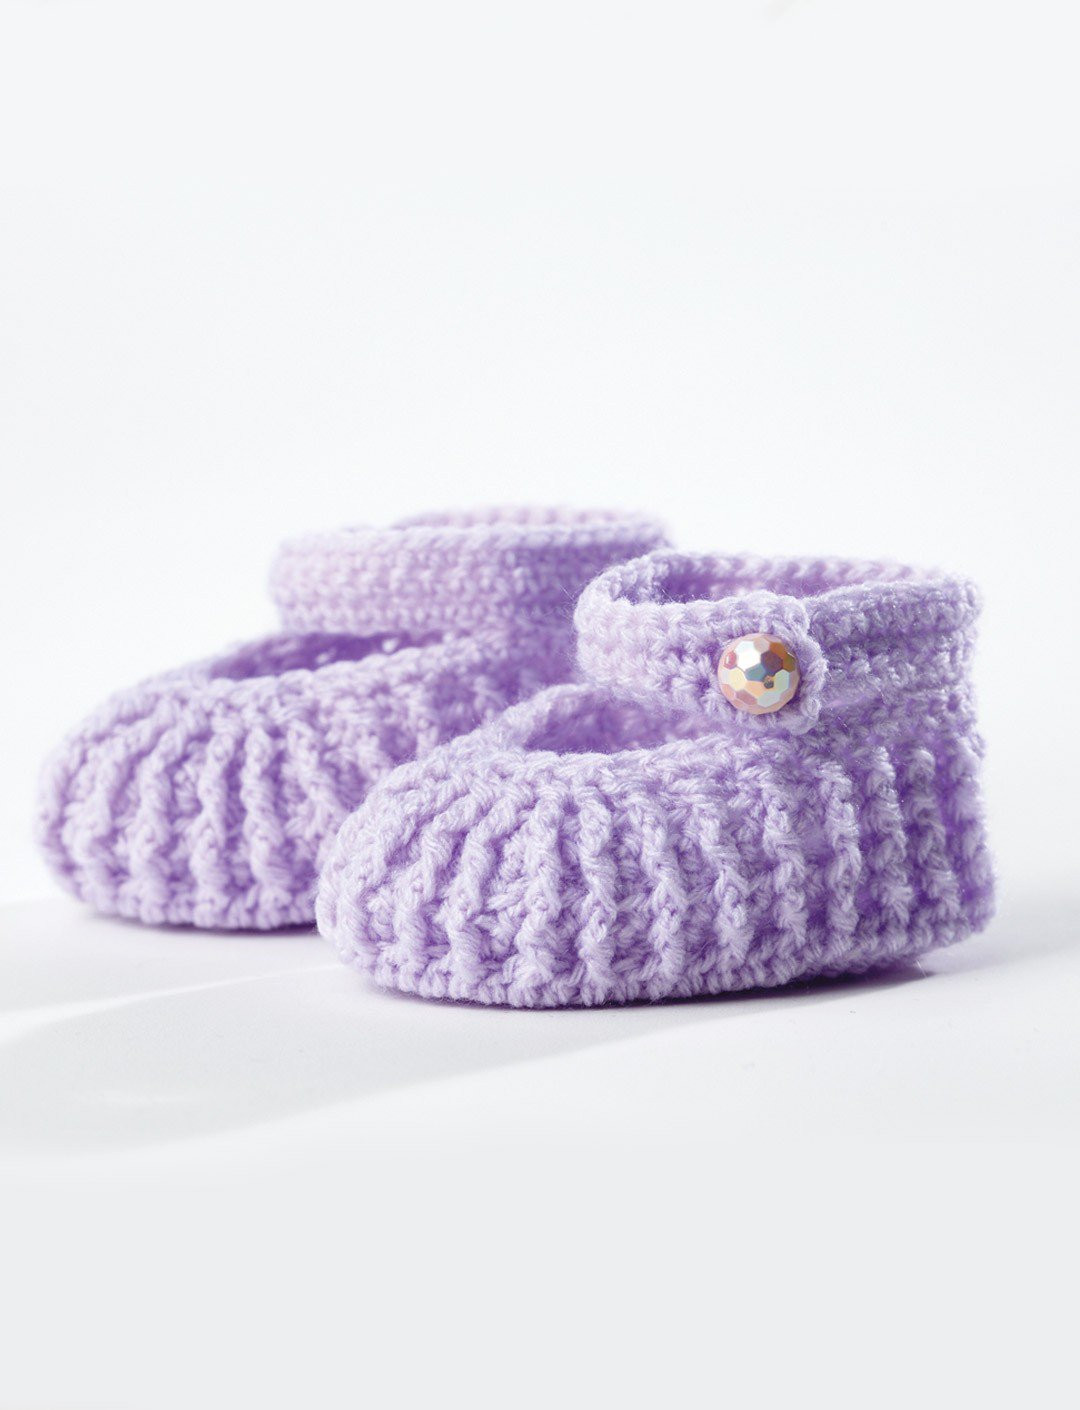 Unique Crochet Baby Mary Jane Booties Free Patterns Crochet Booties Pattern Of Unique 49 Ideas Crochet Booties Pattern